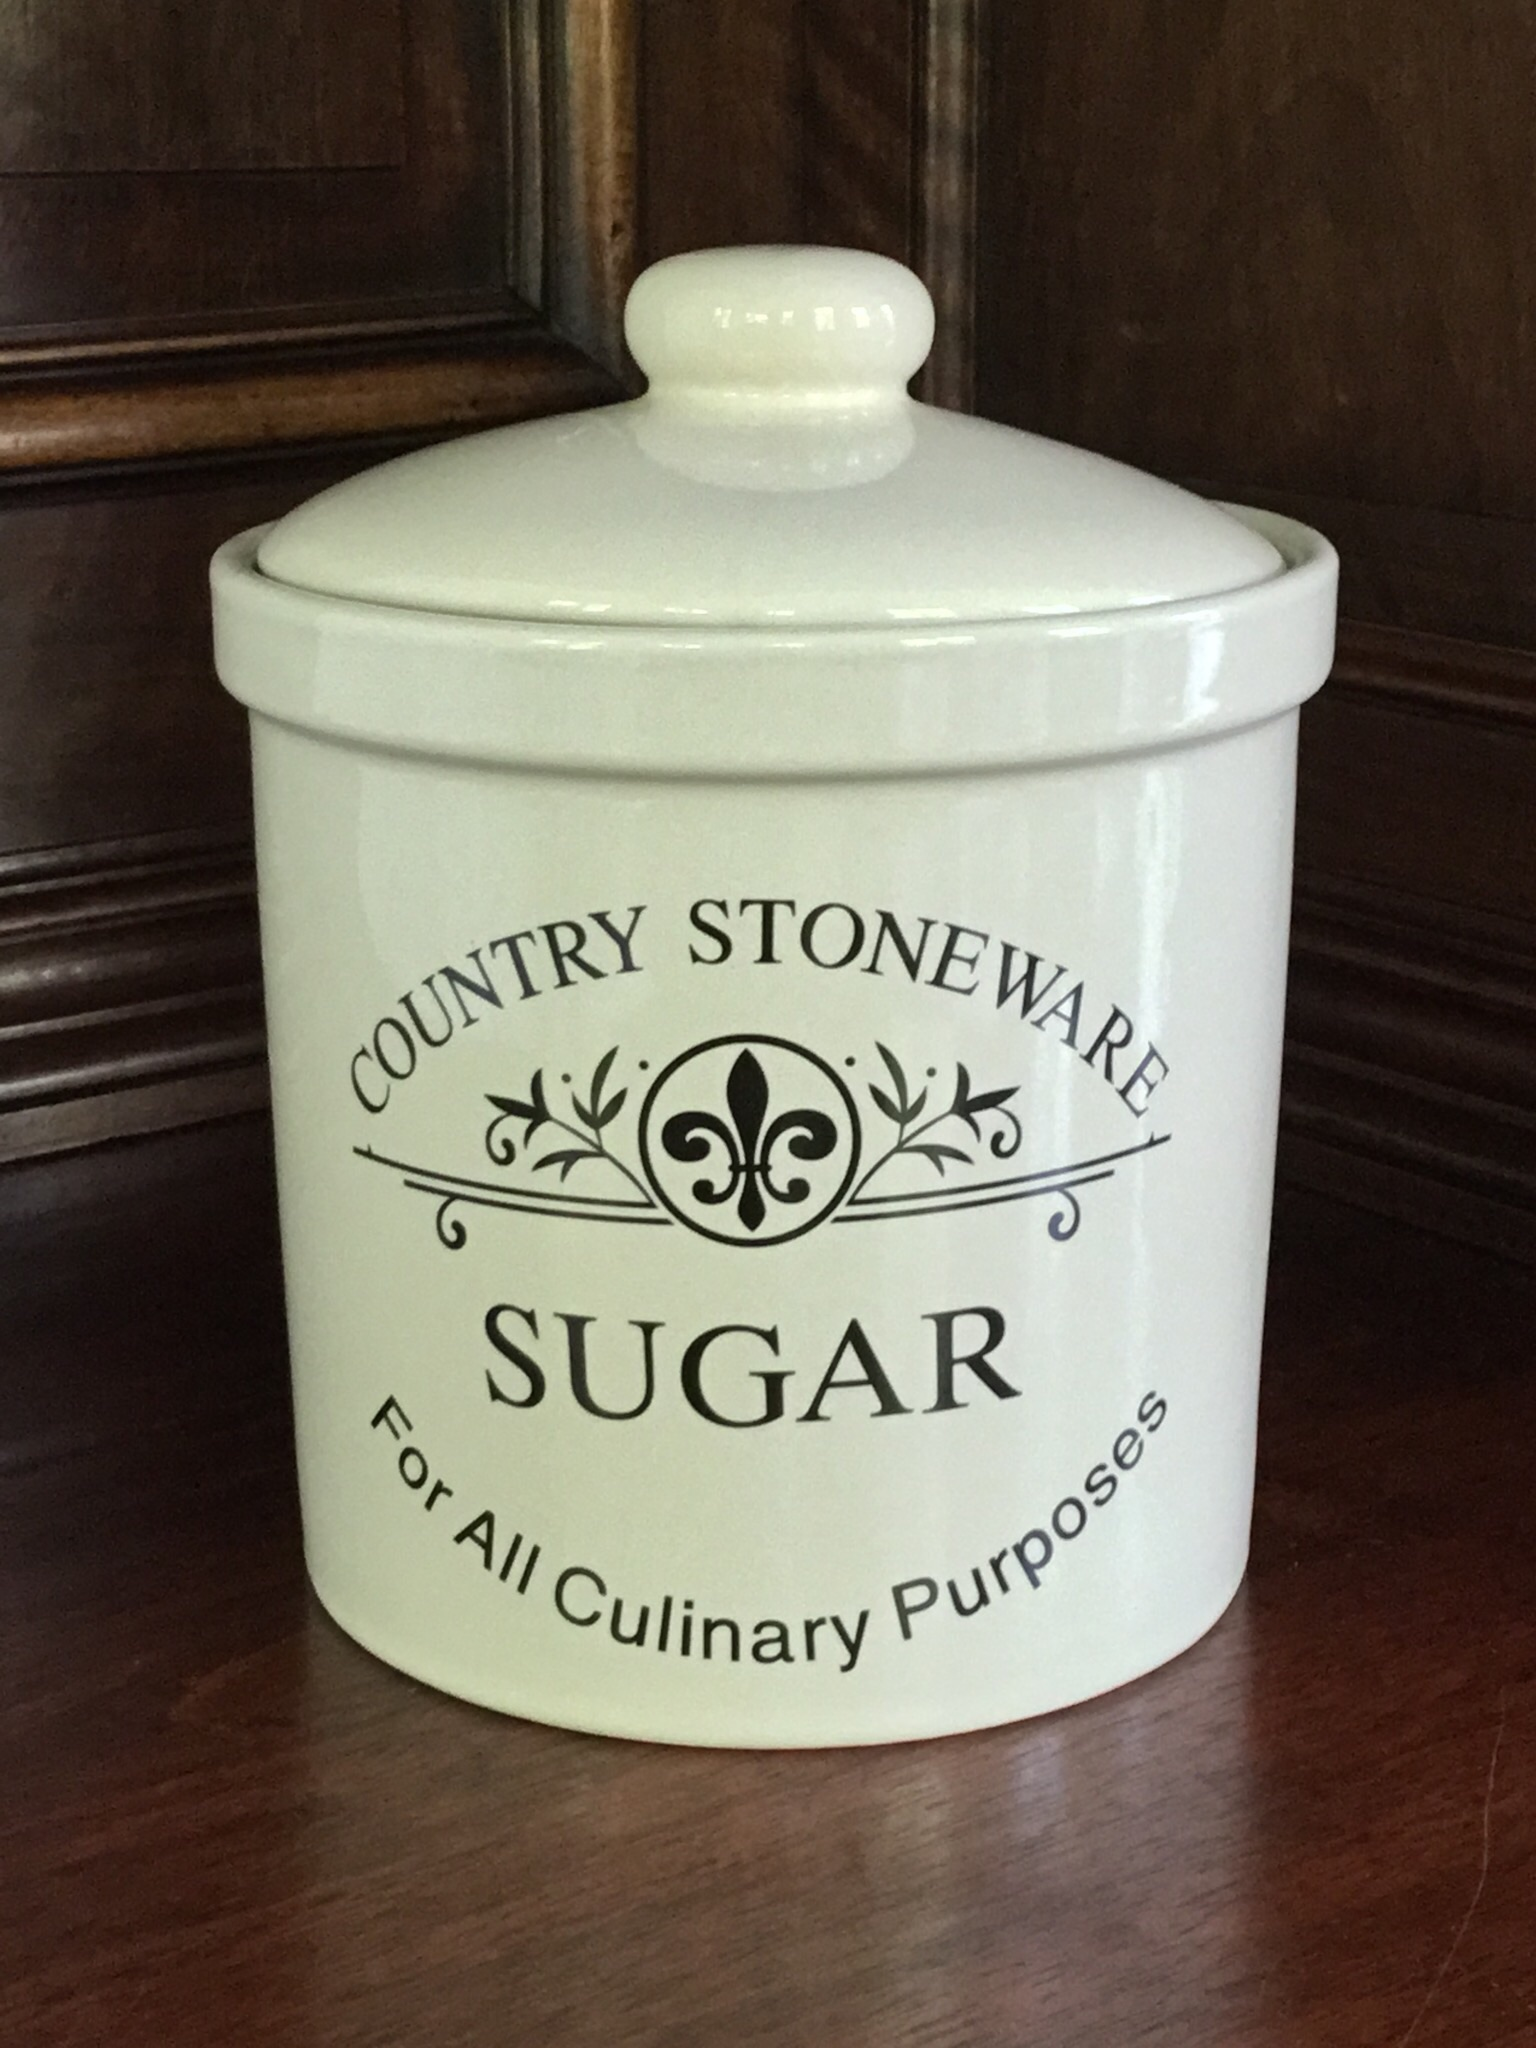 Country Stonware Sugar Canister